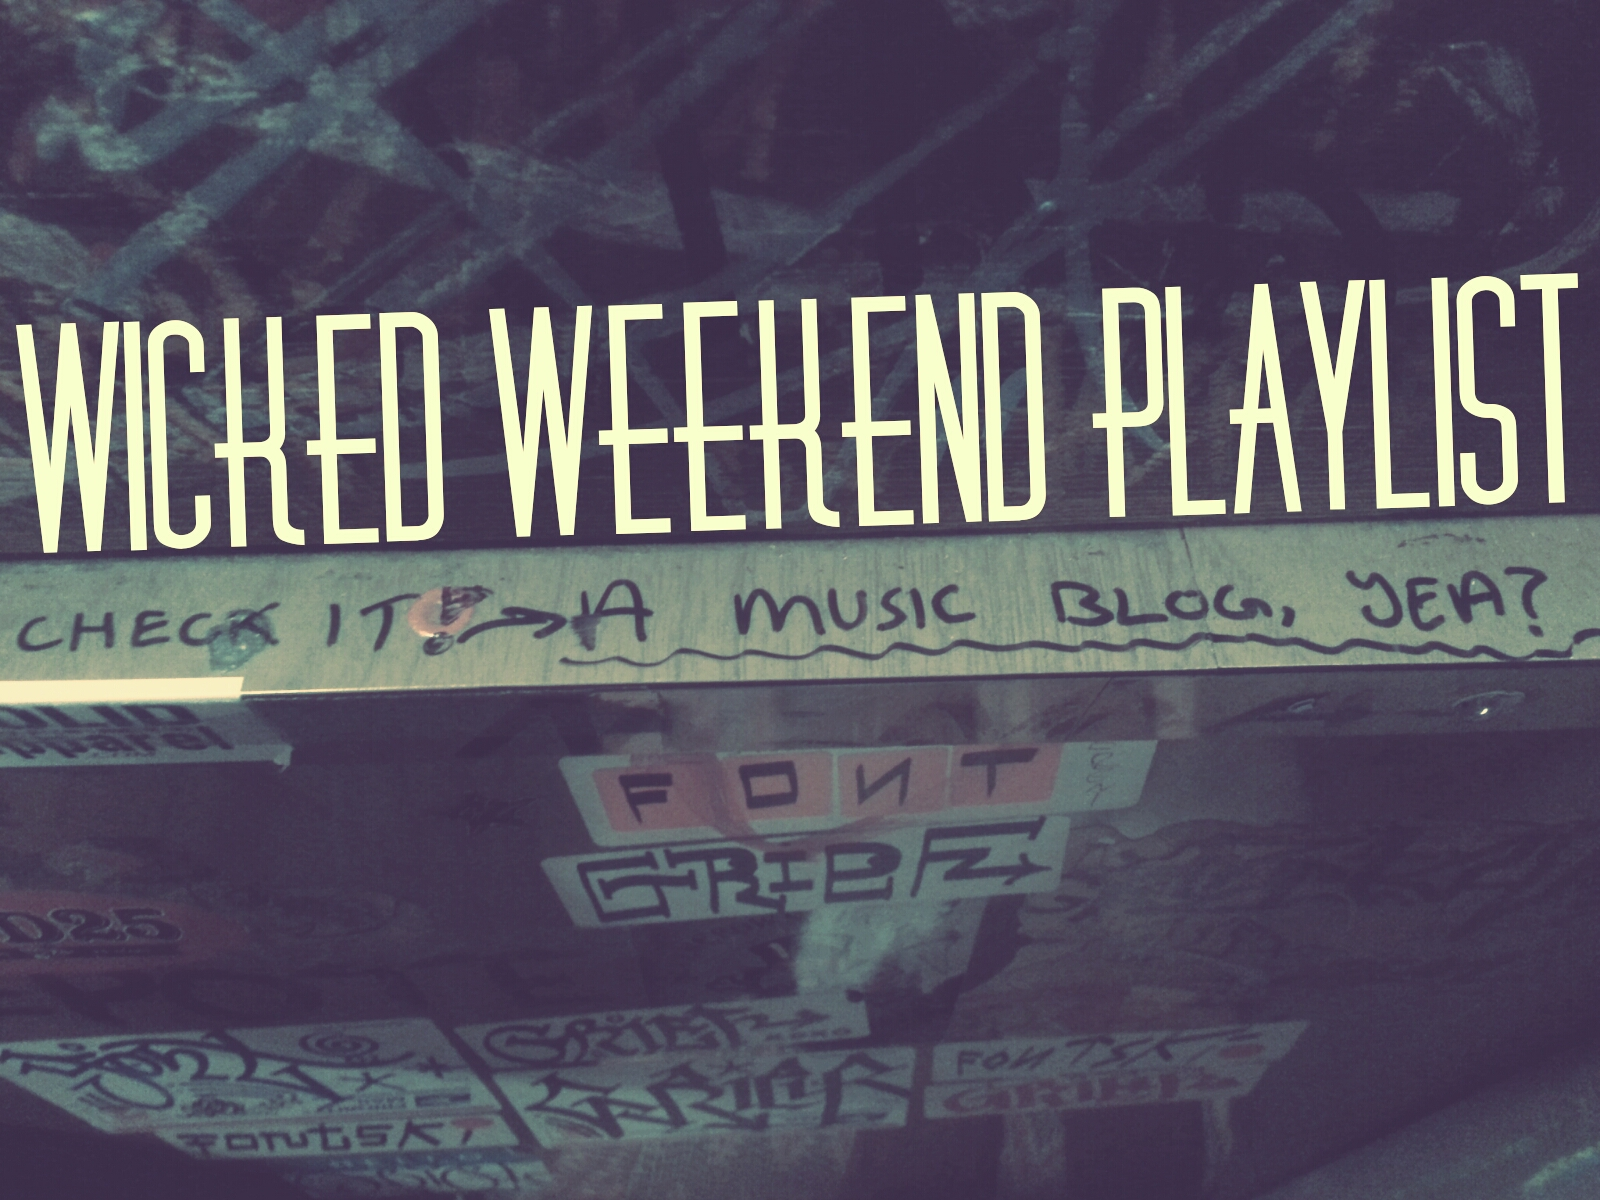 Wicked Weekend Playlist